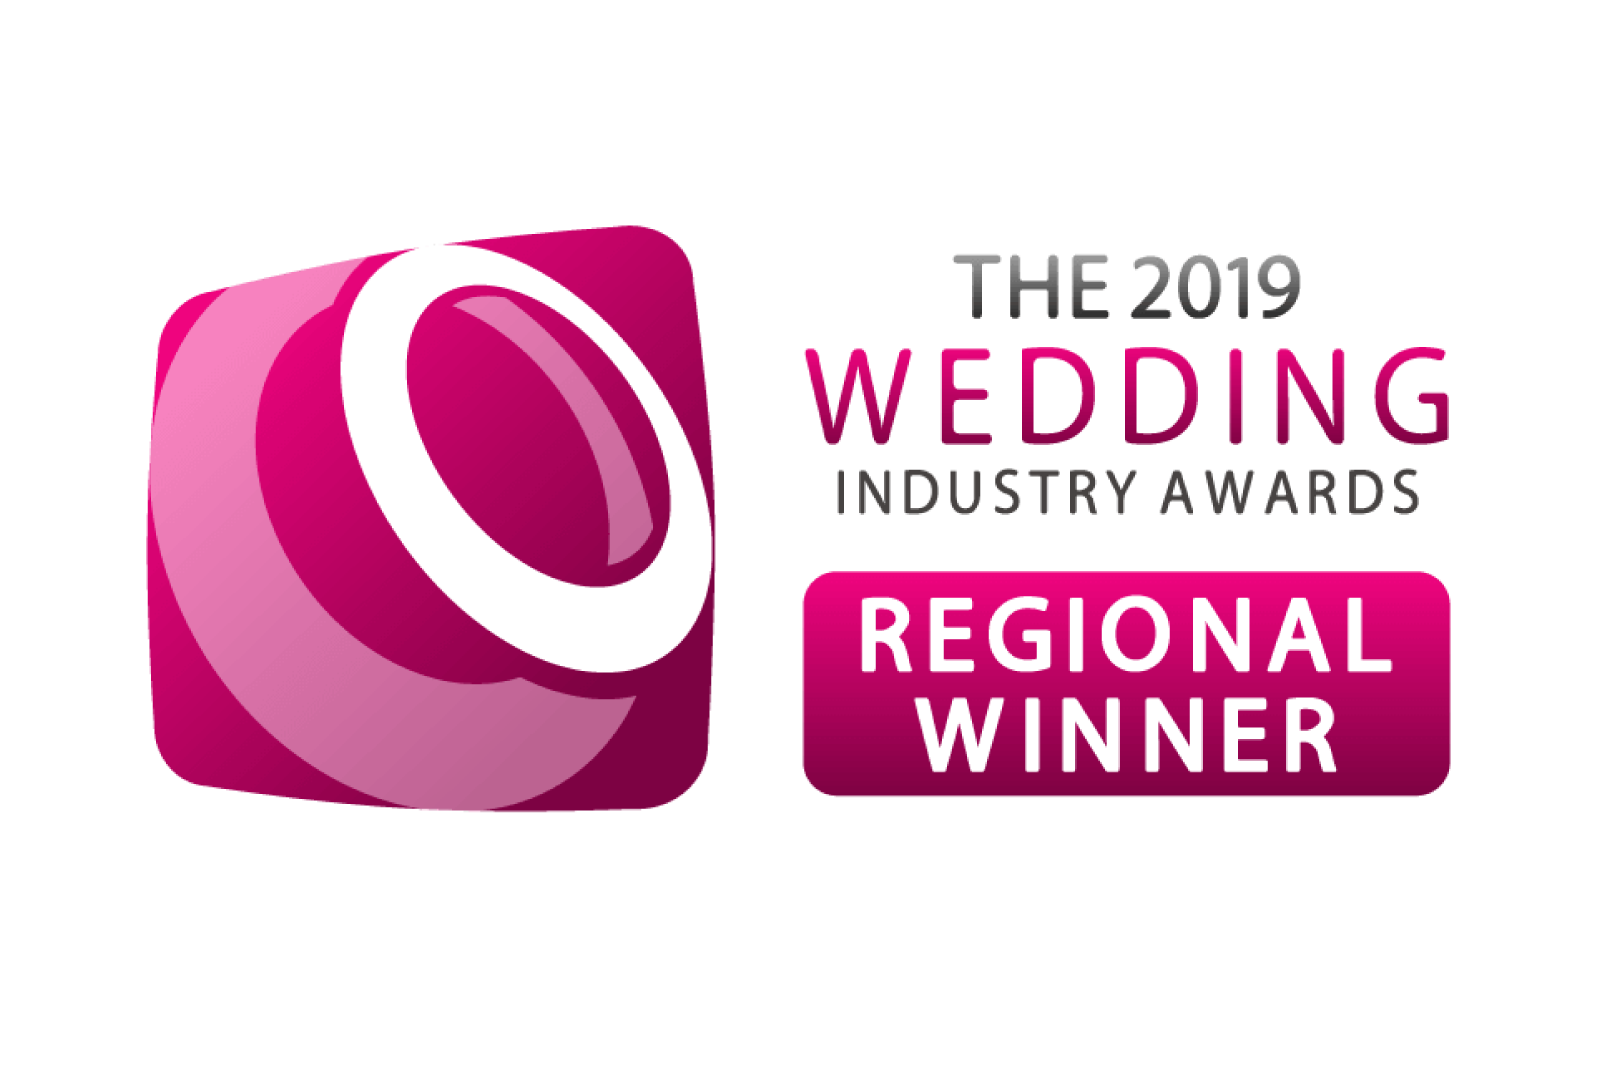 The 2019 Wedding Awards